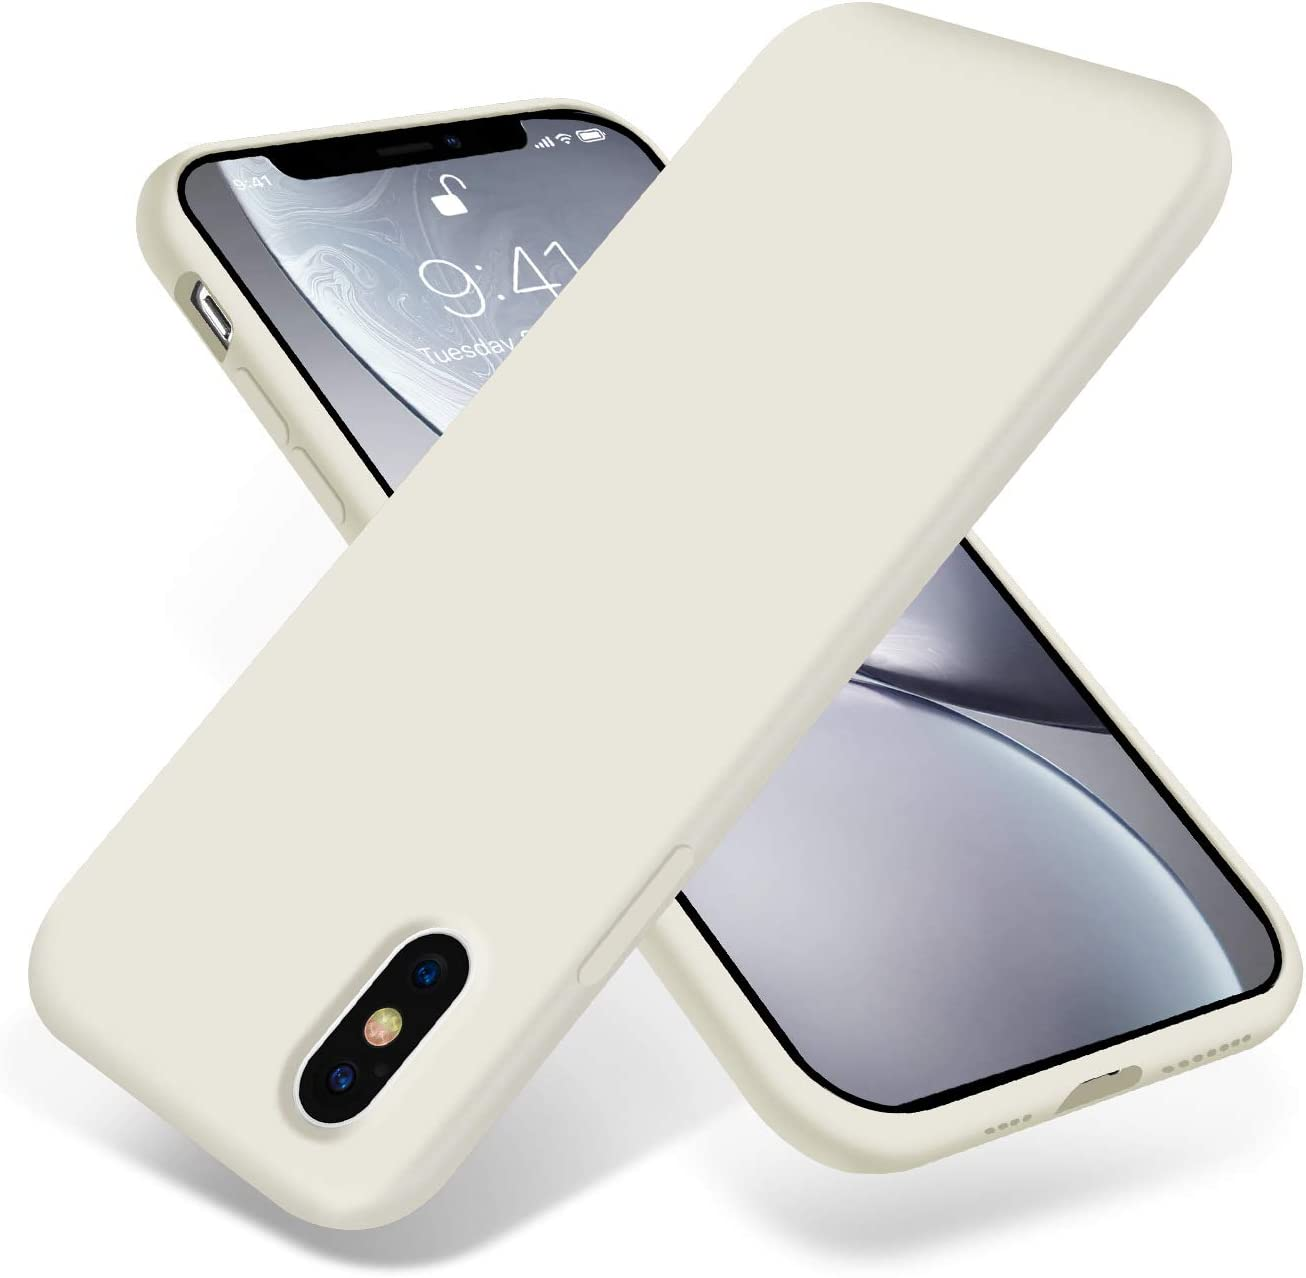 OTOFLY iPhone Xs Max Case,Ultra Slim Fit iPhone Case Liquid Silicone Gel Cover with Full Body Protection Anti-Scratch Shockproof Case Compatible with iPhone Xs Max, [Upgraded Version] (Antique White)